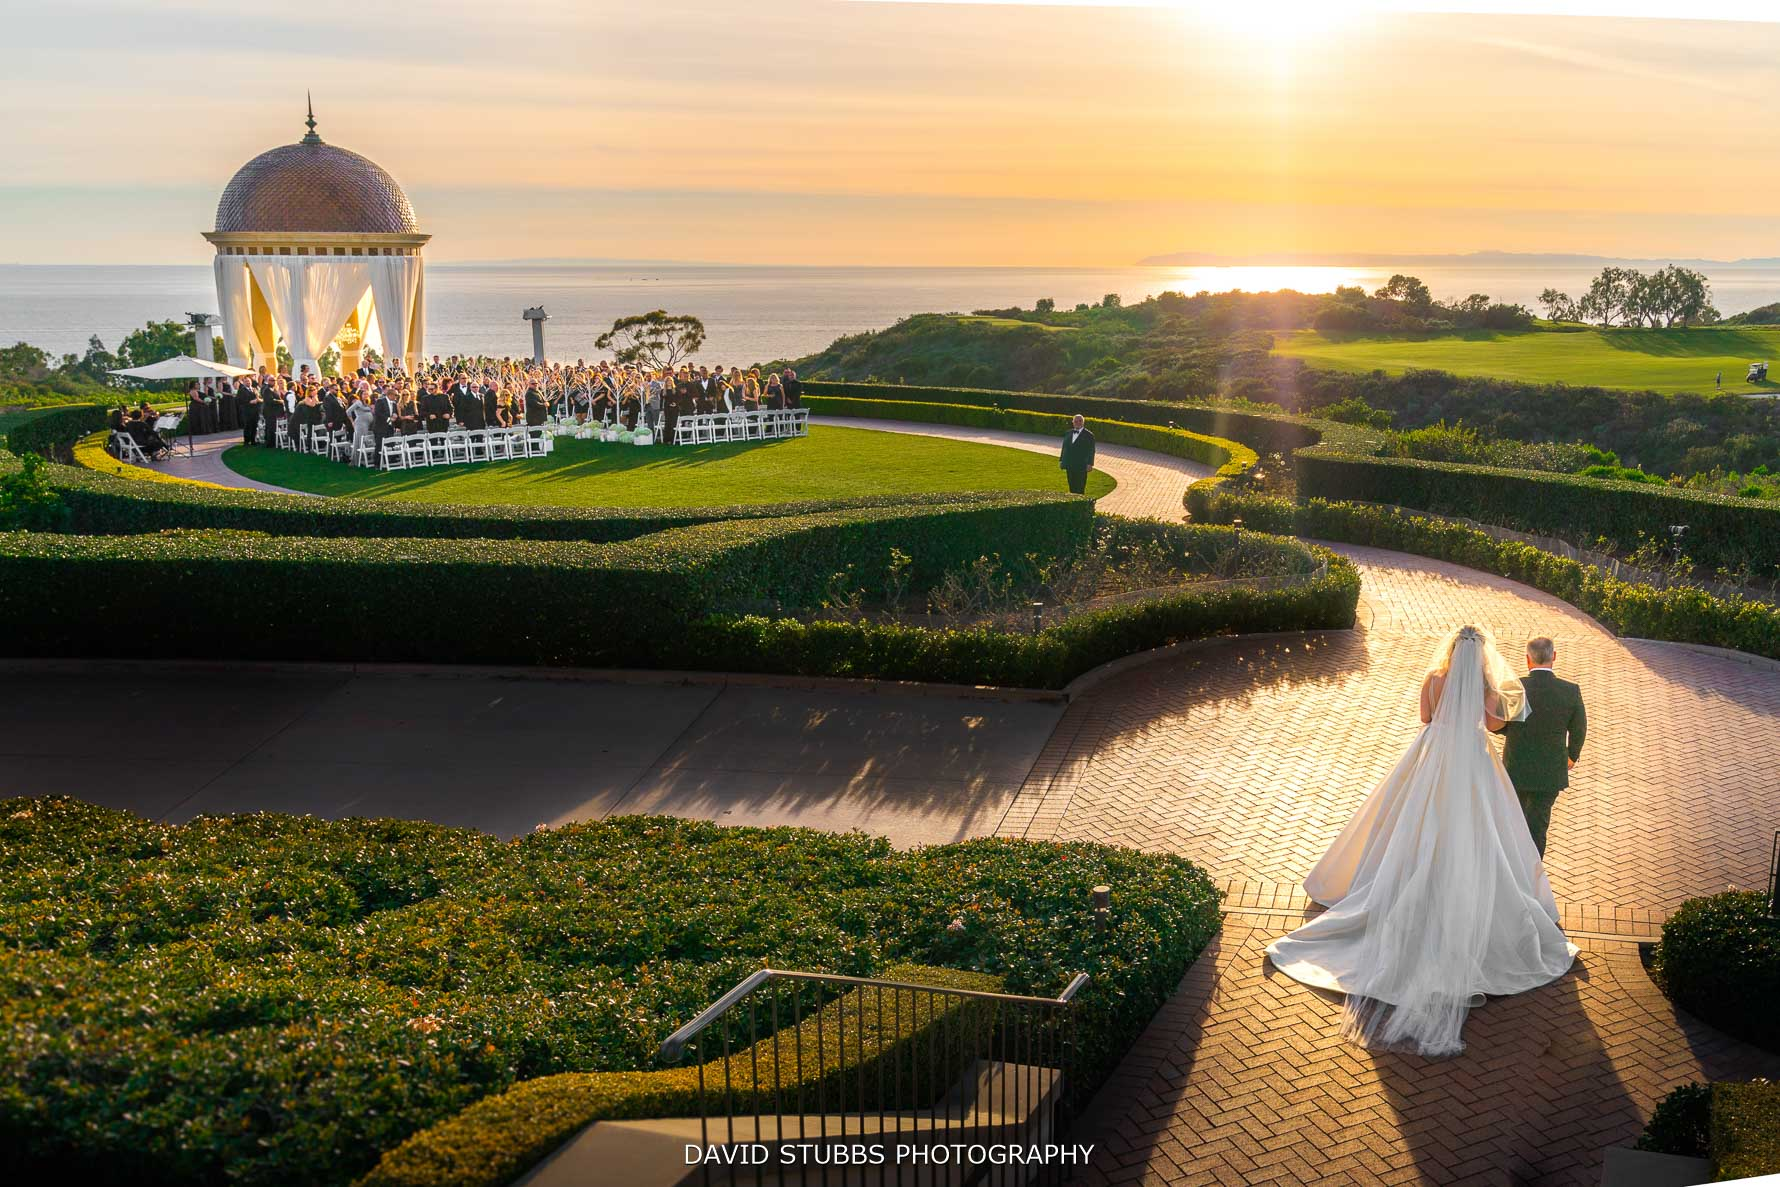 brides procession at pelican hill resort